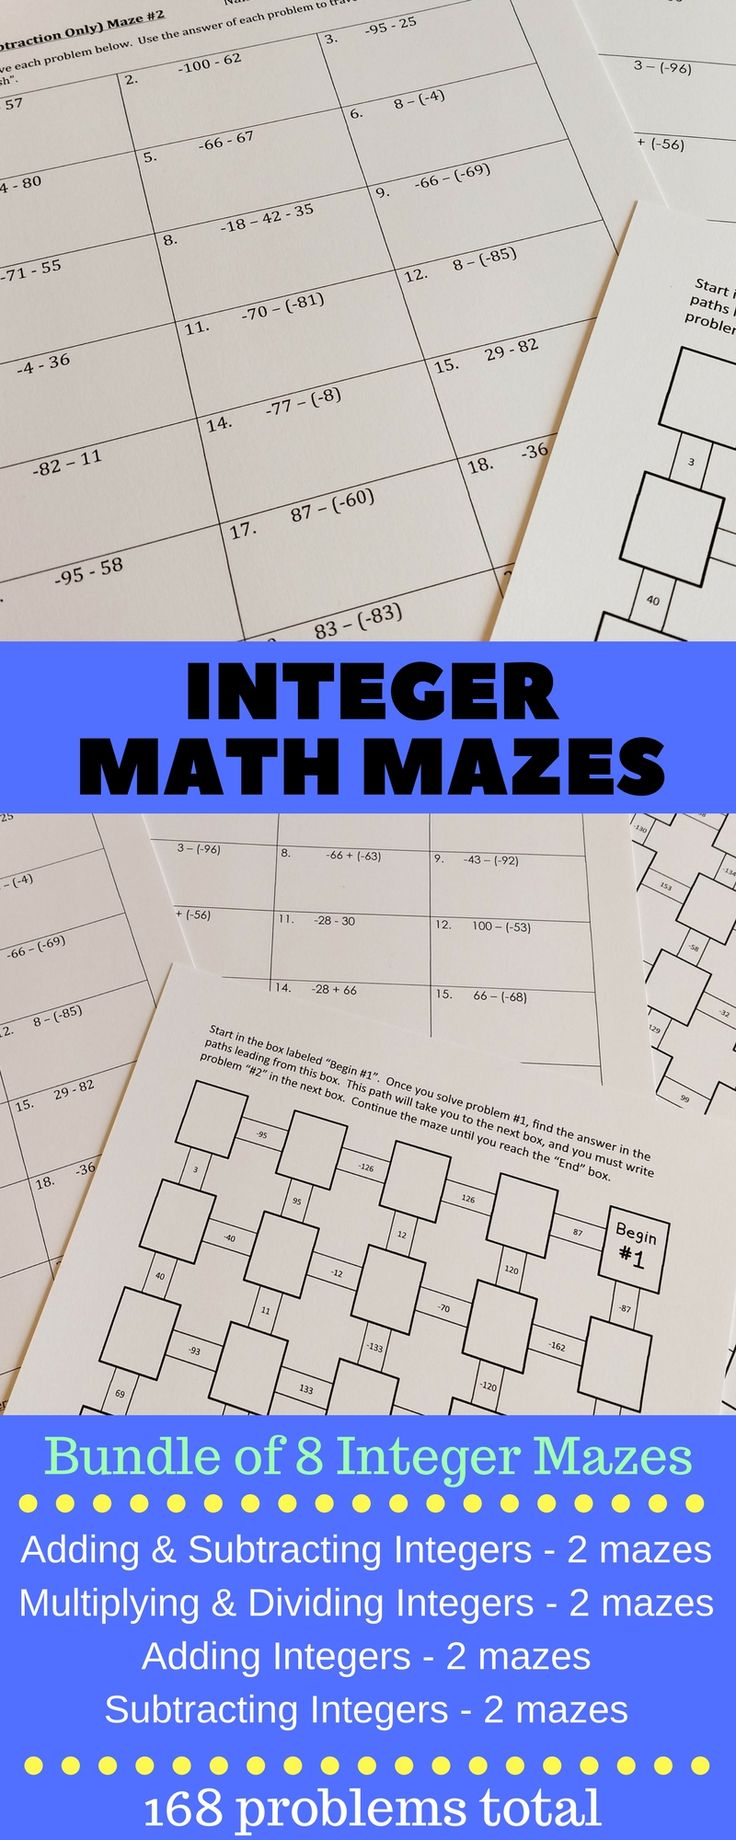 Integers Maze Bundle: 8 math mazes with a total of 168 integer problems. Mazes for adding integers, subtracting integers, multiplying integers, dividing integers, adding and subtracting integers (mixed), multiplying and dividing integers (mixed). Mazes are self-checking and a great way to practice math concepts. The front of the maze sheet provides the students with workspace so that all work can be shown. No prep - just print. Answer keys included. #middleschool #math